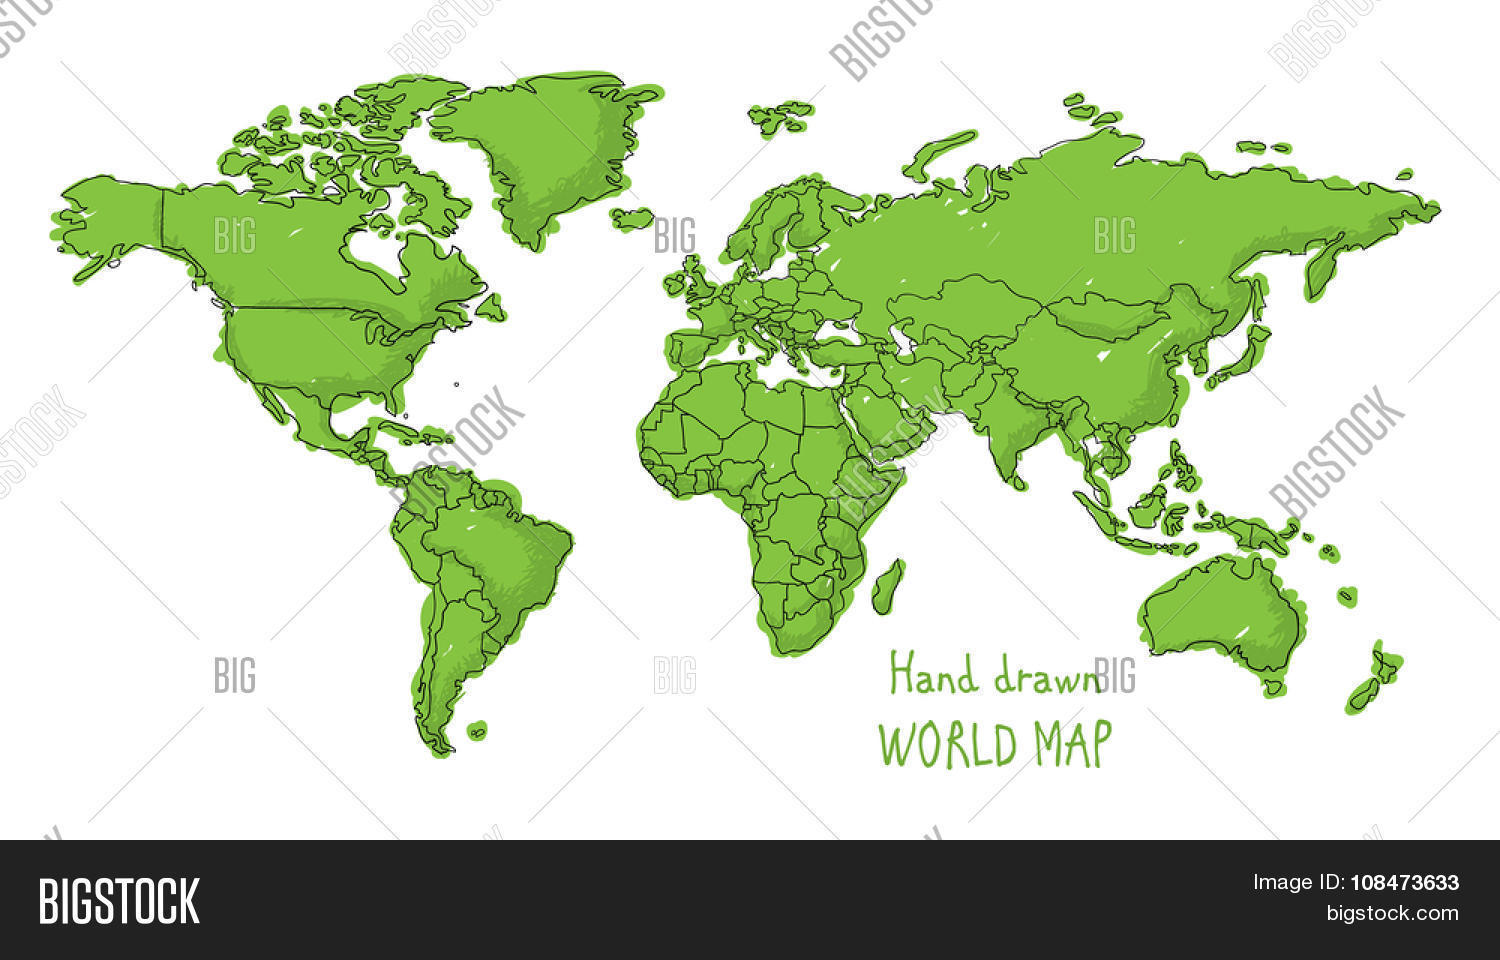 Hand drawn world map vector photo free trial bigstock hand drawn world map doodled with a childish cartoon style contouring the countries gumiabroncs Images